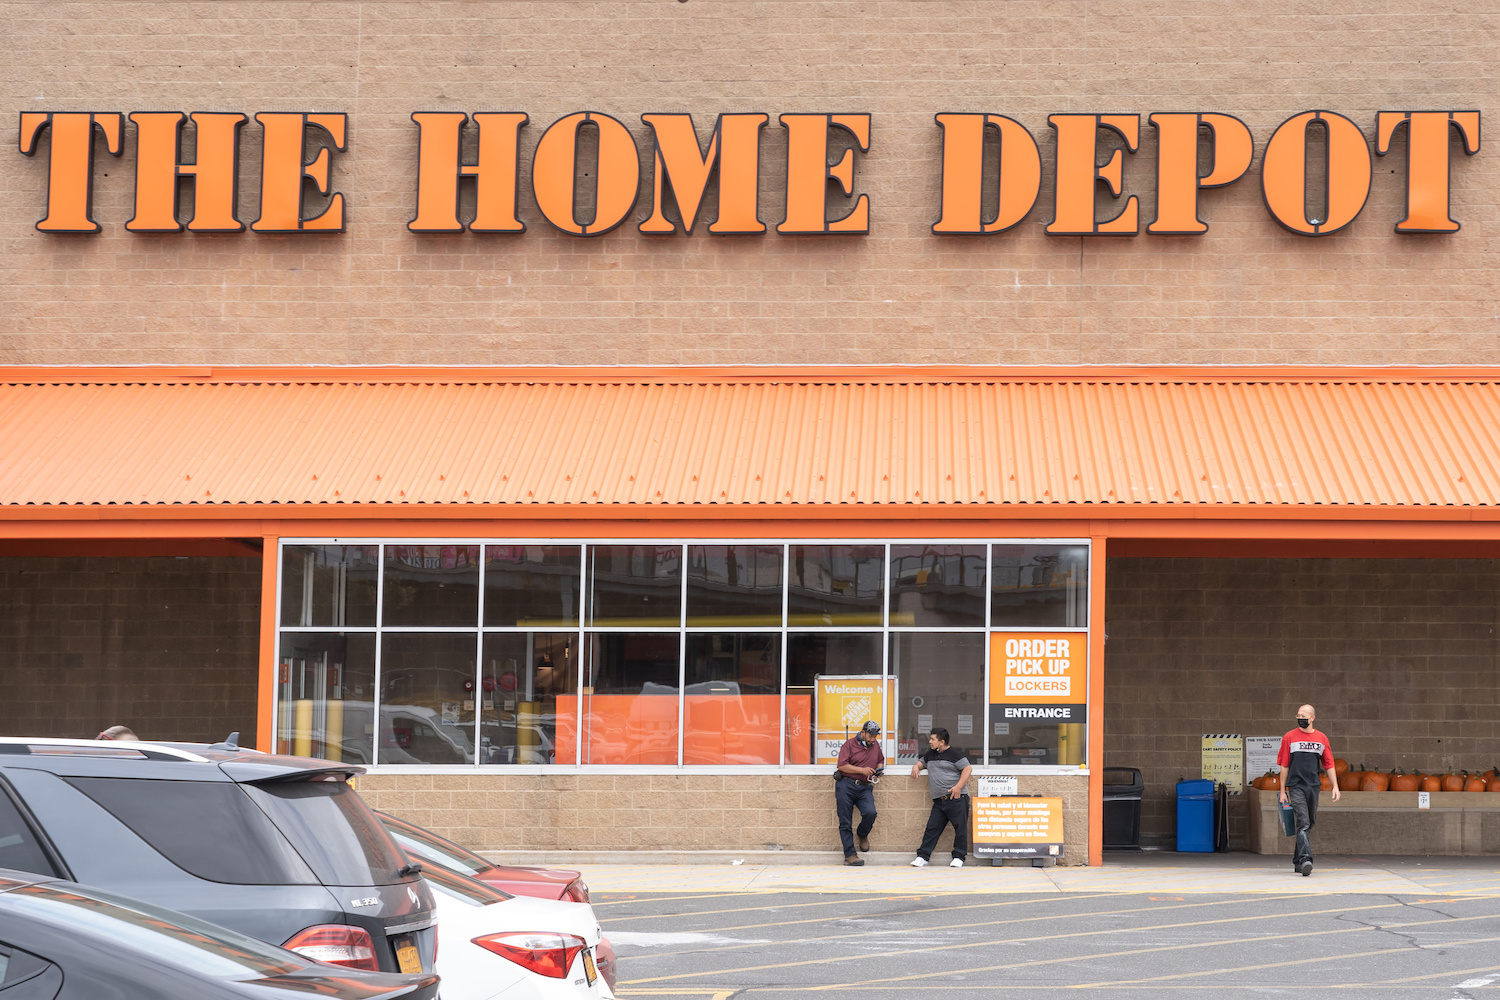 The Home Depot logo and store seen in Queens Borough of New